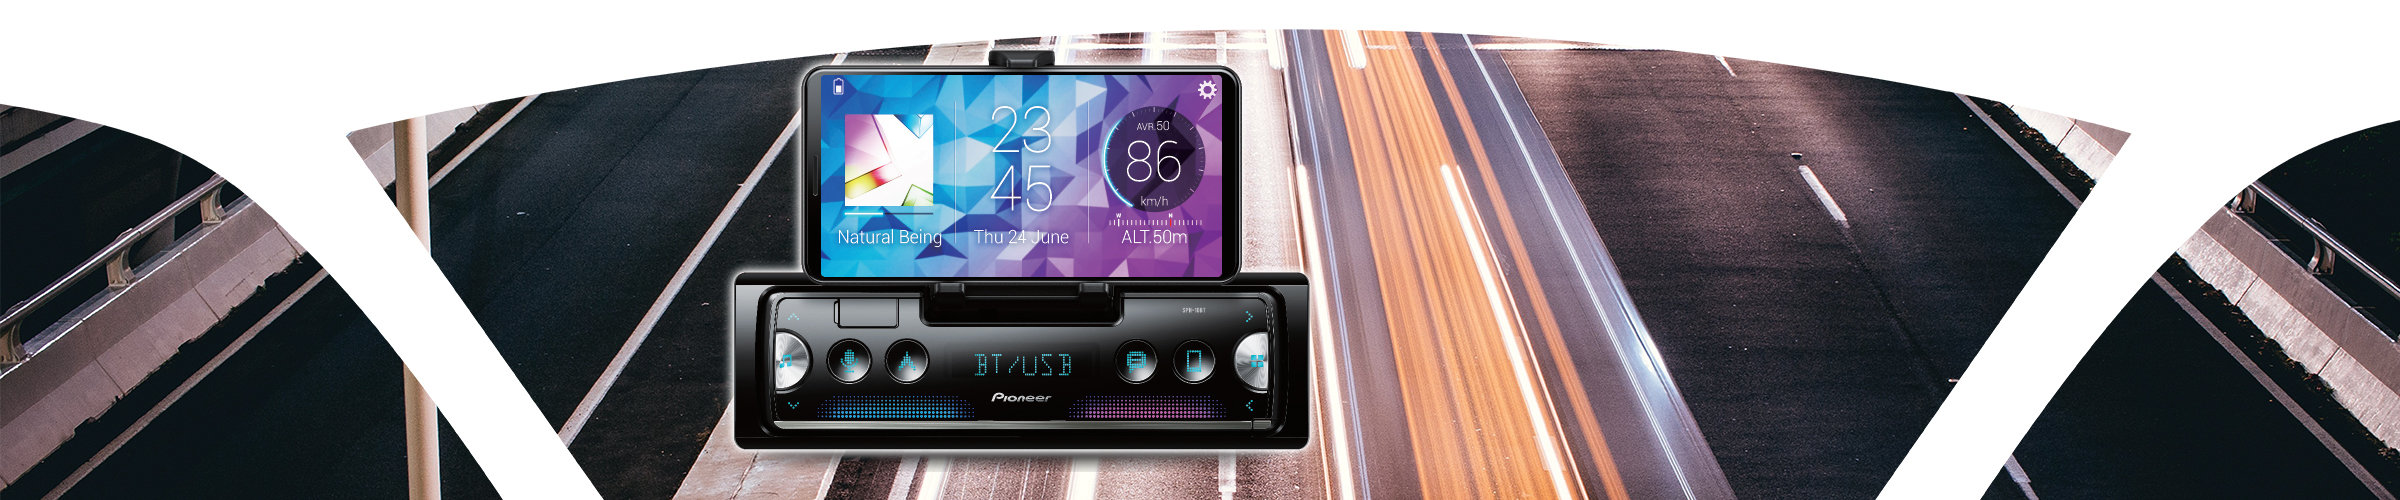 Pioneer Car Entertainment Latest Products And Features Germany Audio Stores News From